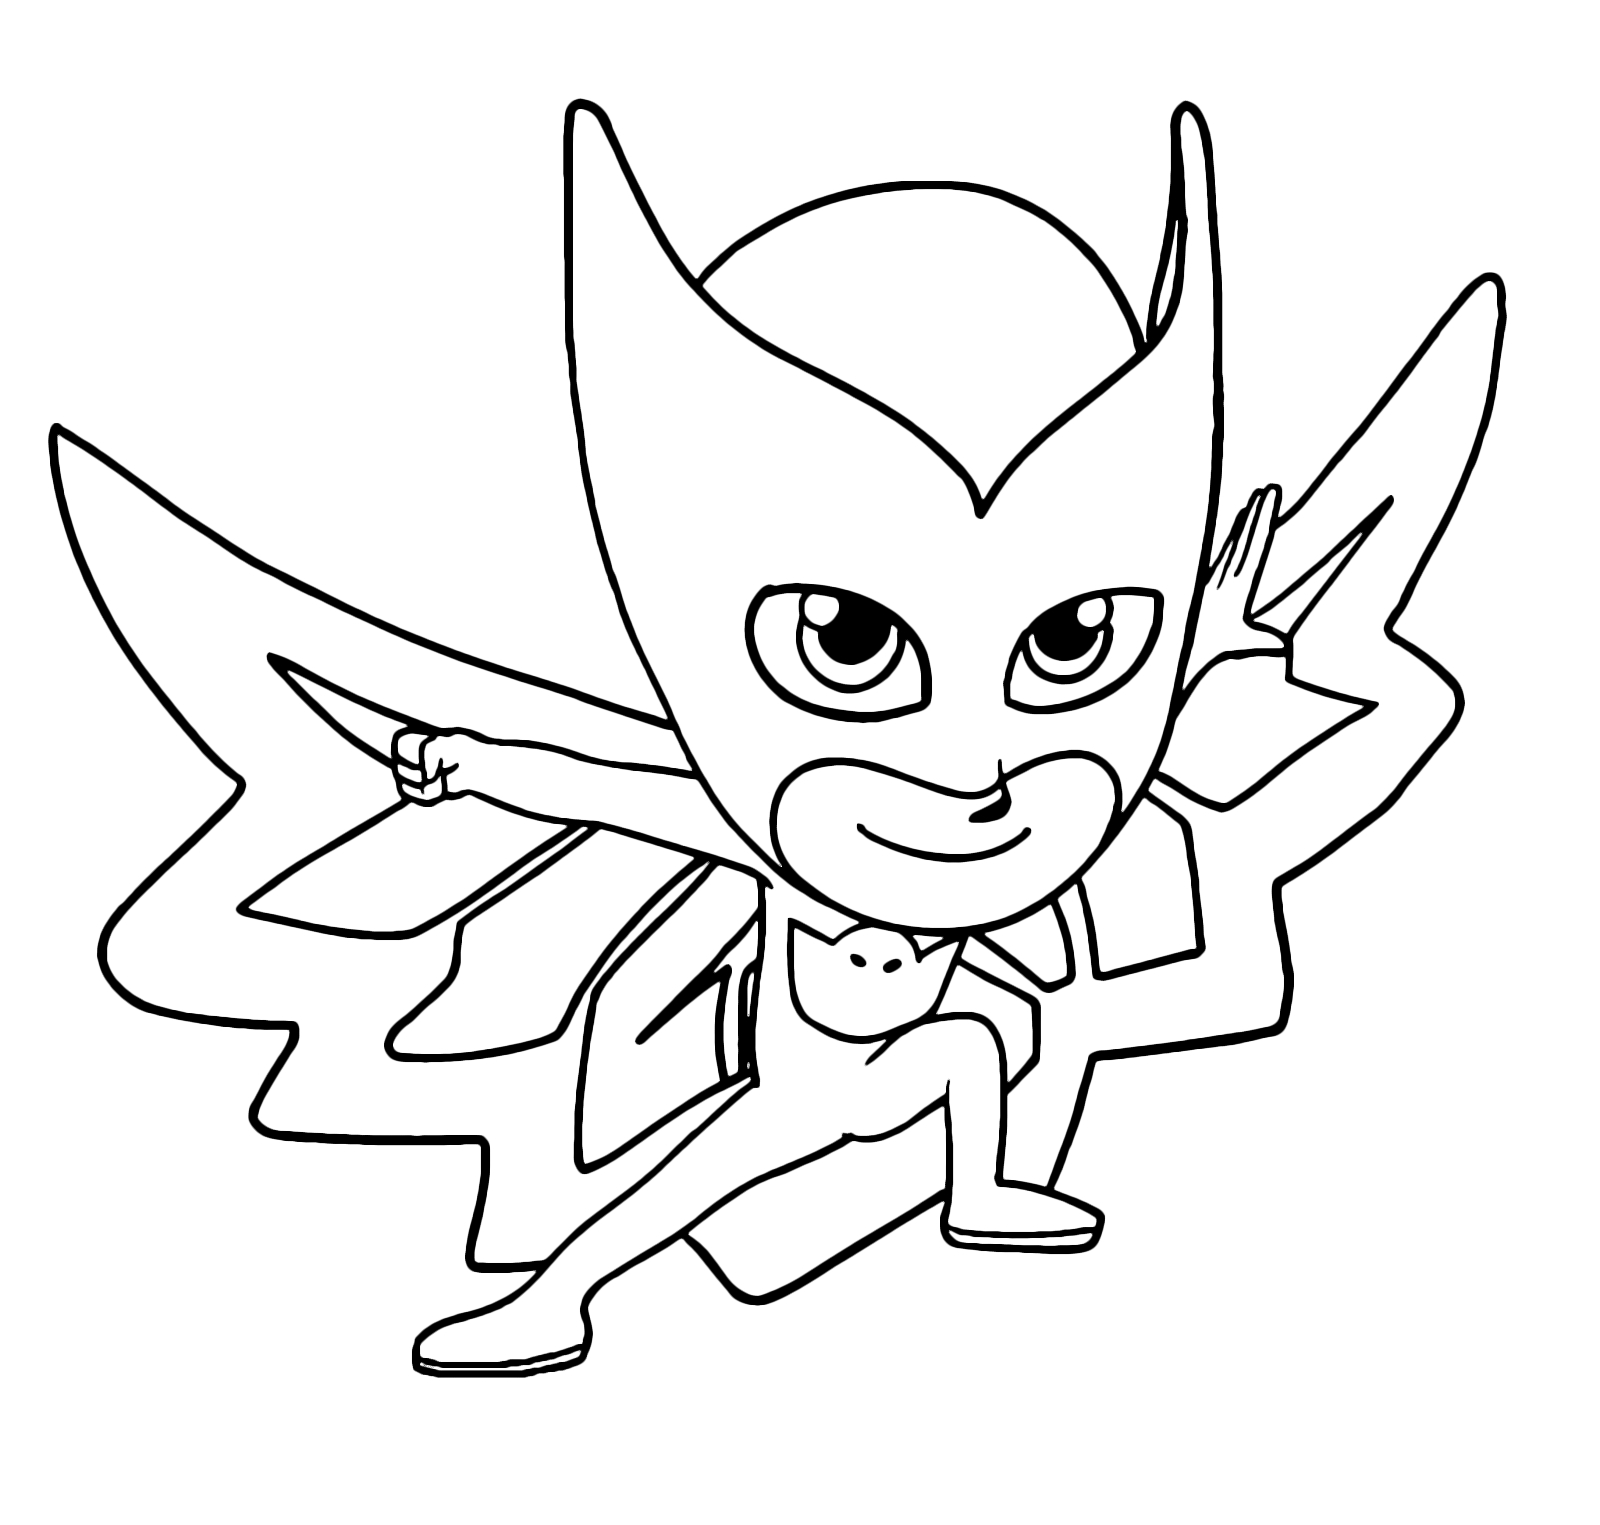 Pj Mask Owlette Coloring Pages